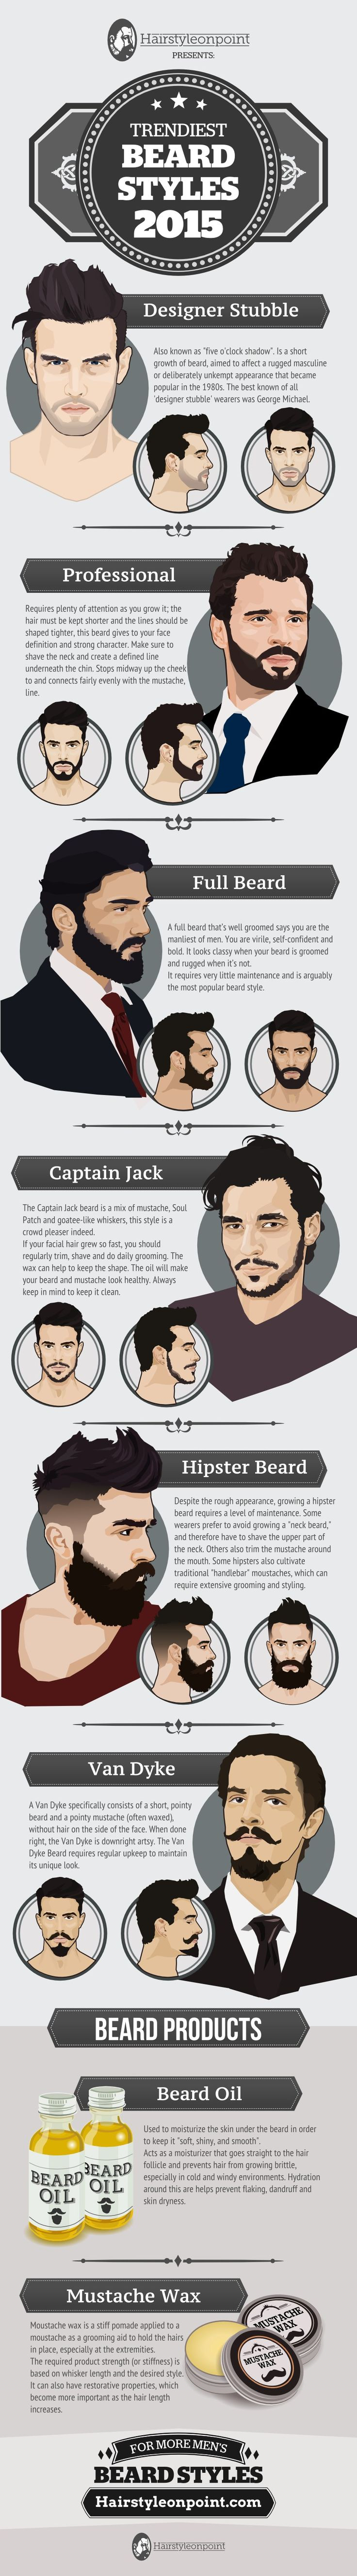 Beards: A Guide to the Trendiest Beard Styles of 2015